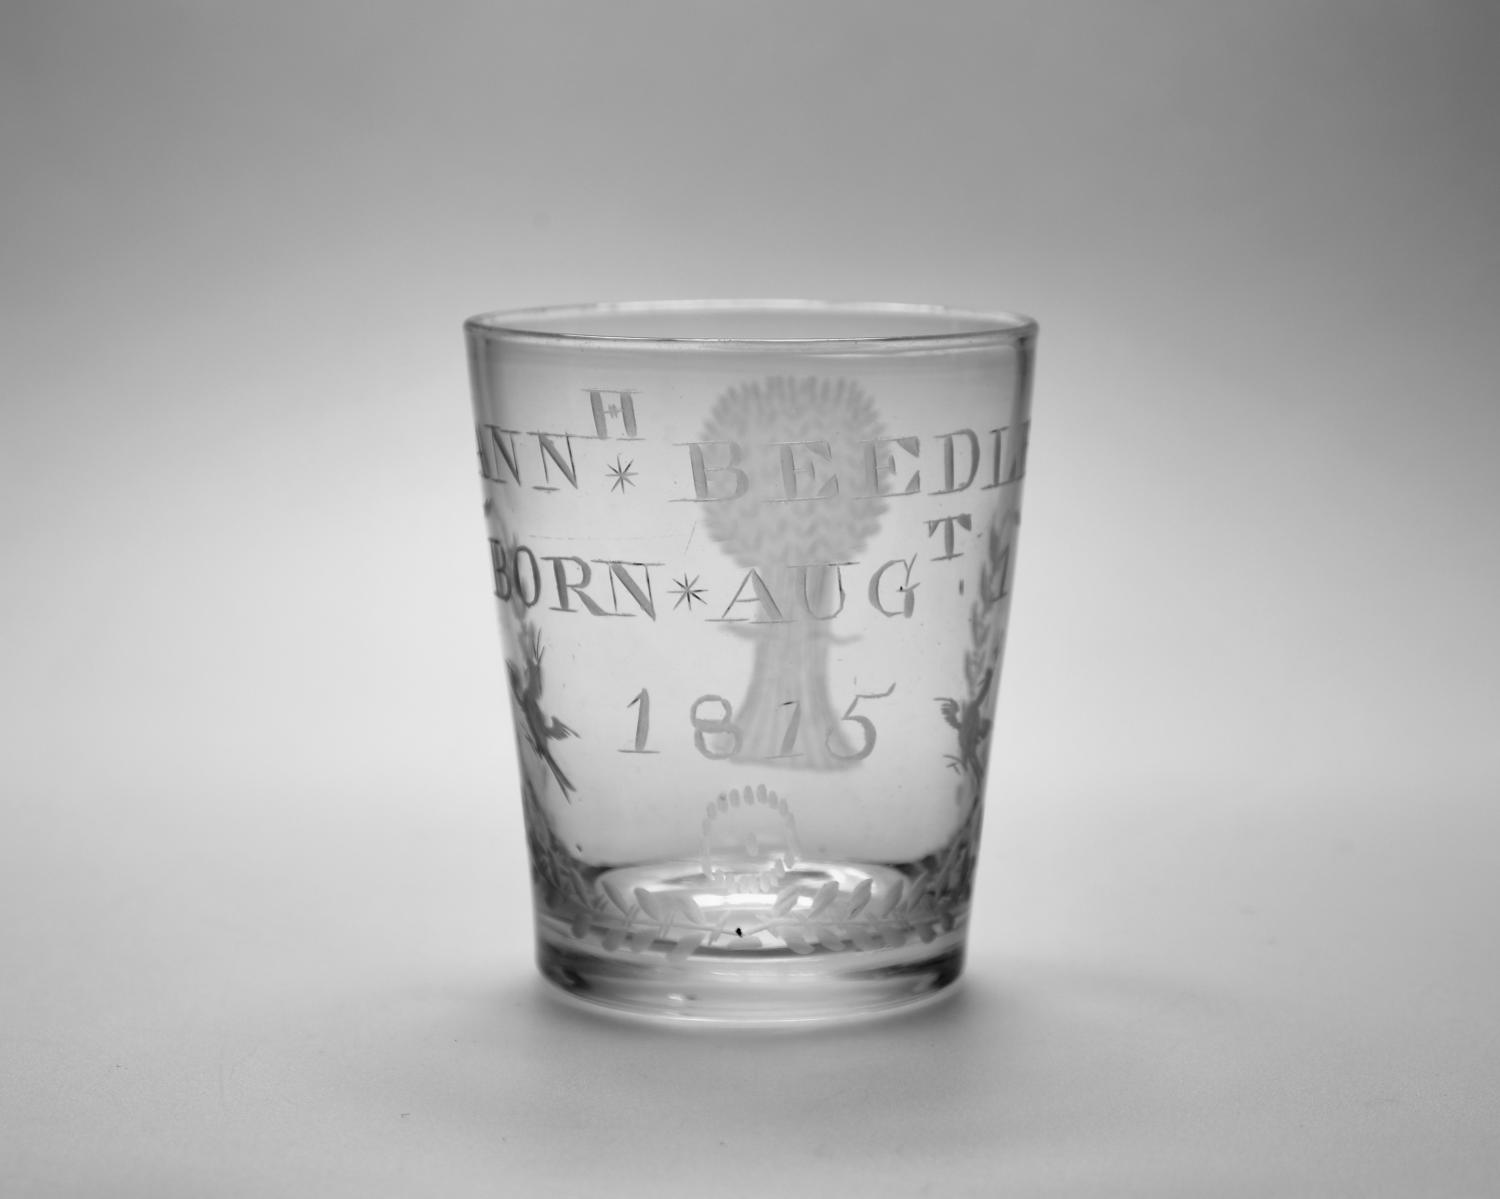 Engraved tumbler dated 1815.